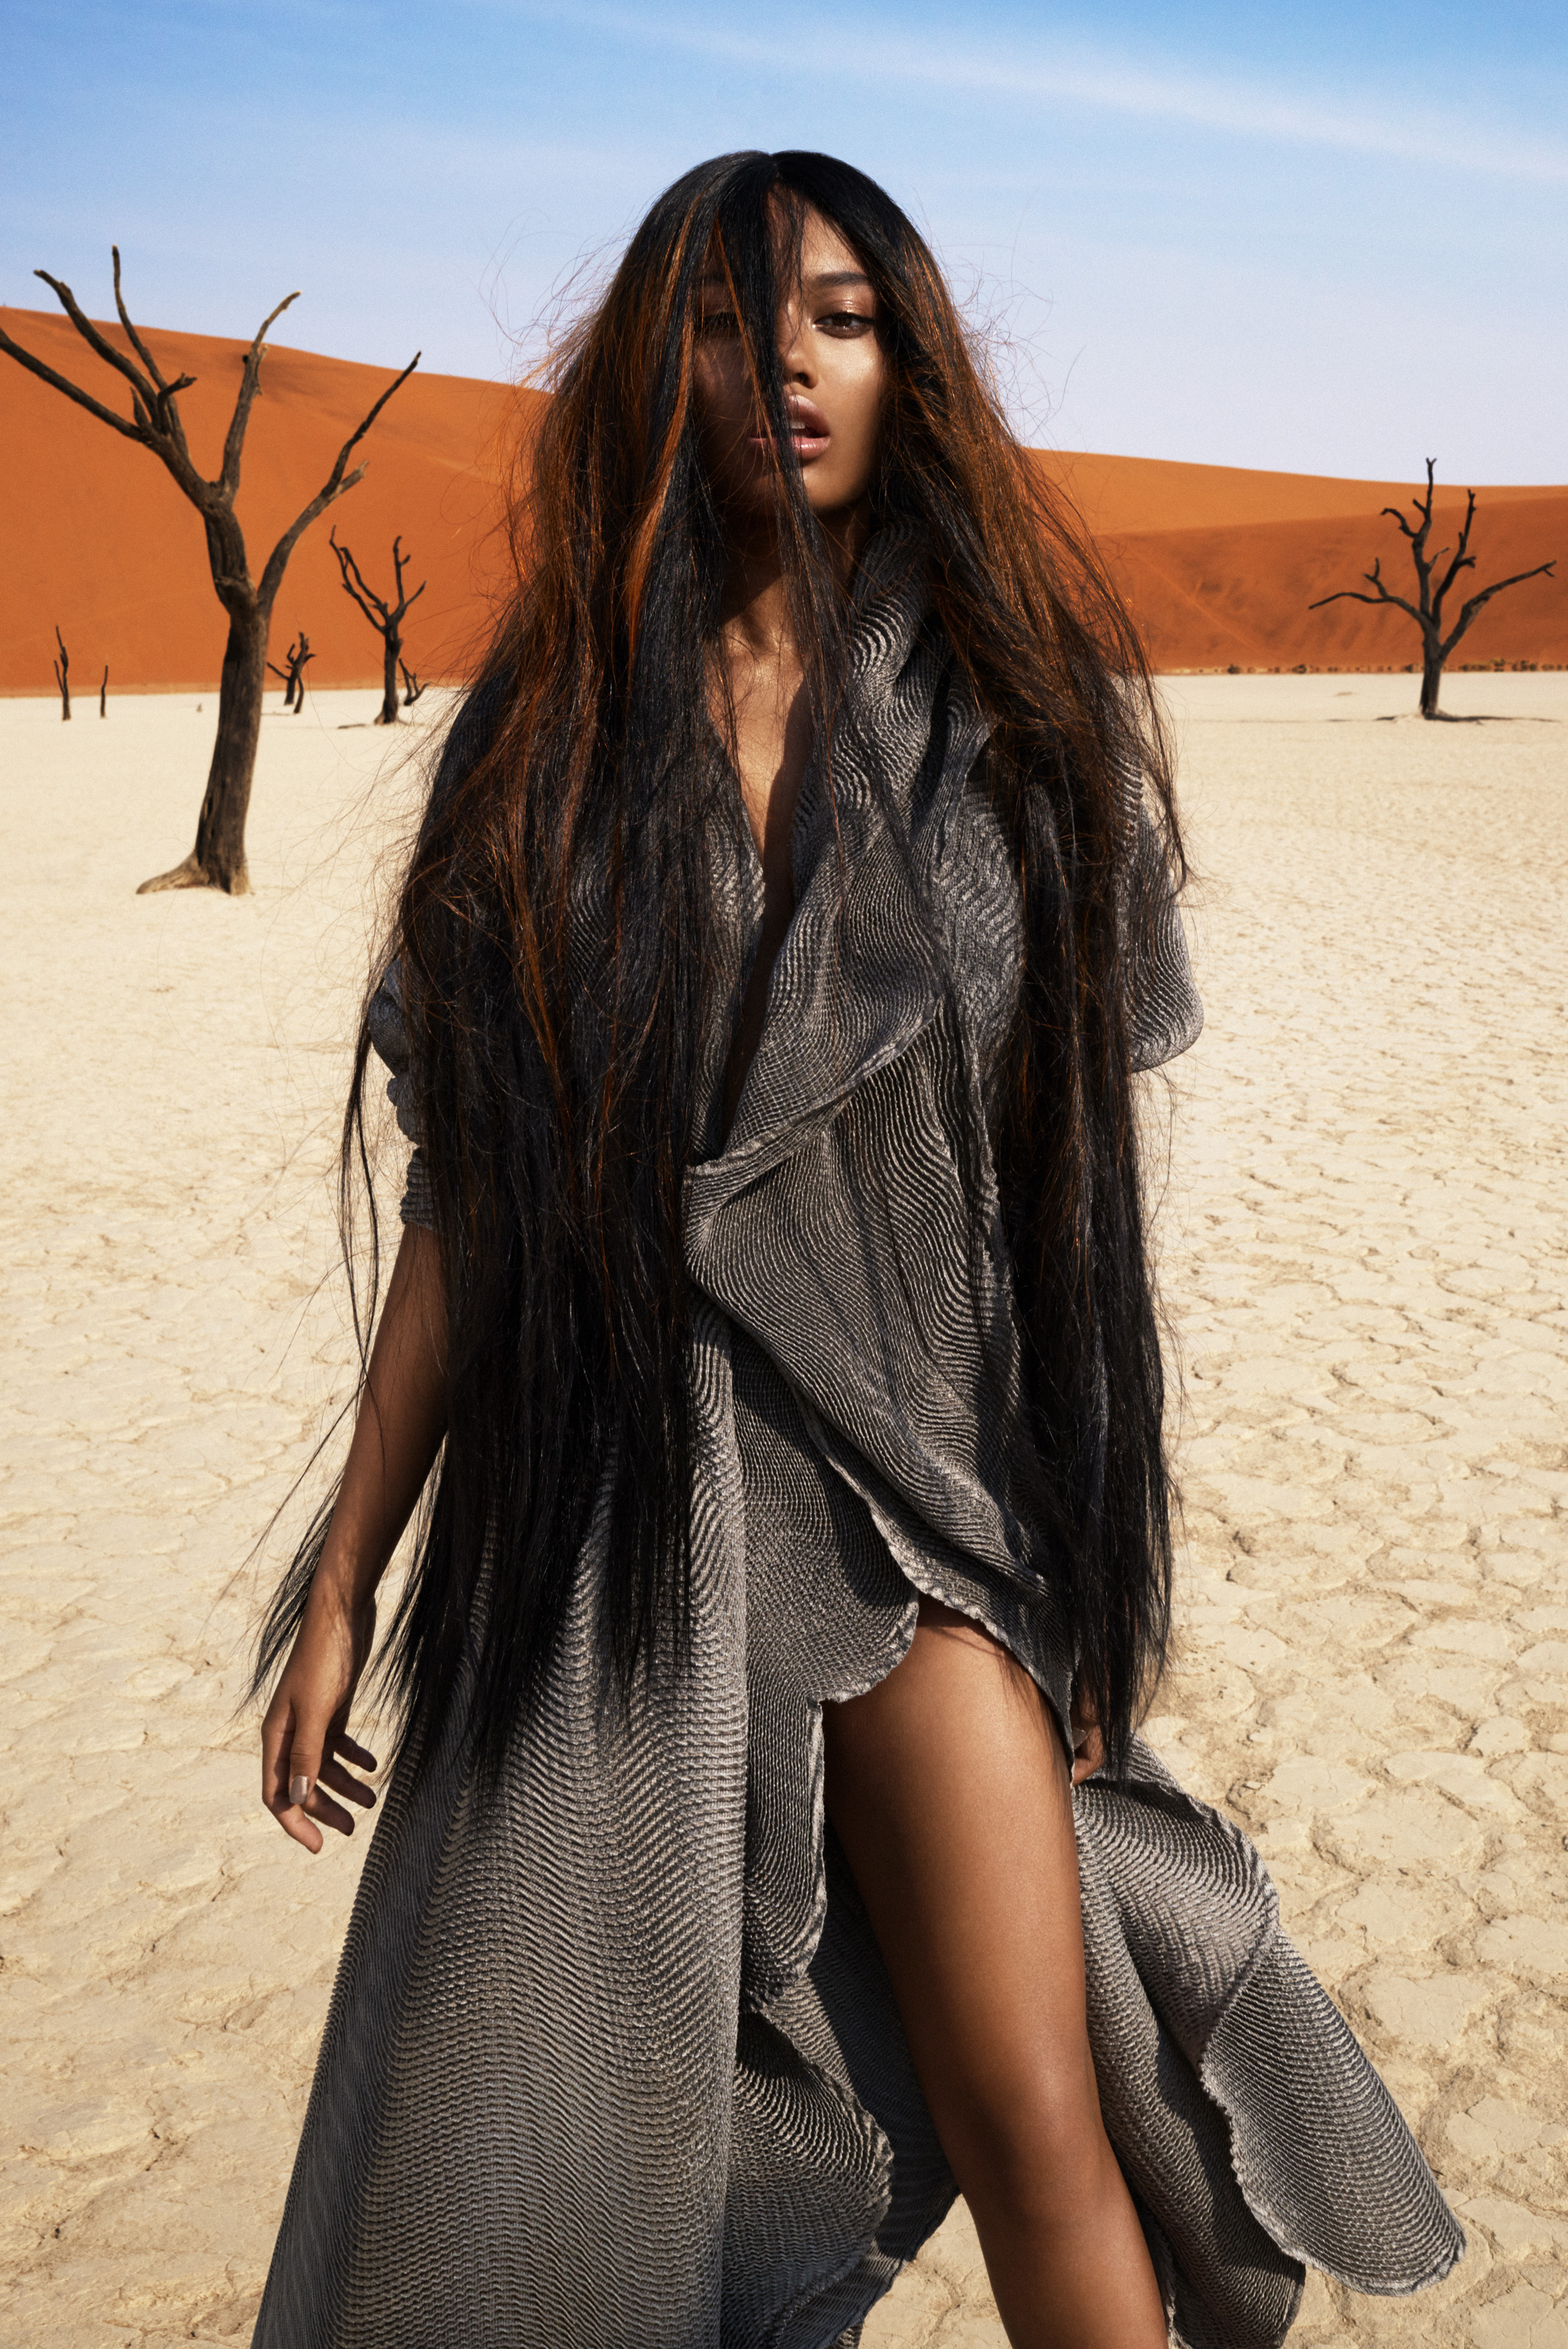 170912_GREAT_LENGTHS_NAMIBIA_sh03_0058_low_res.jpg